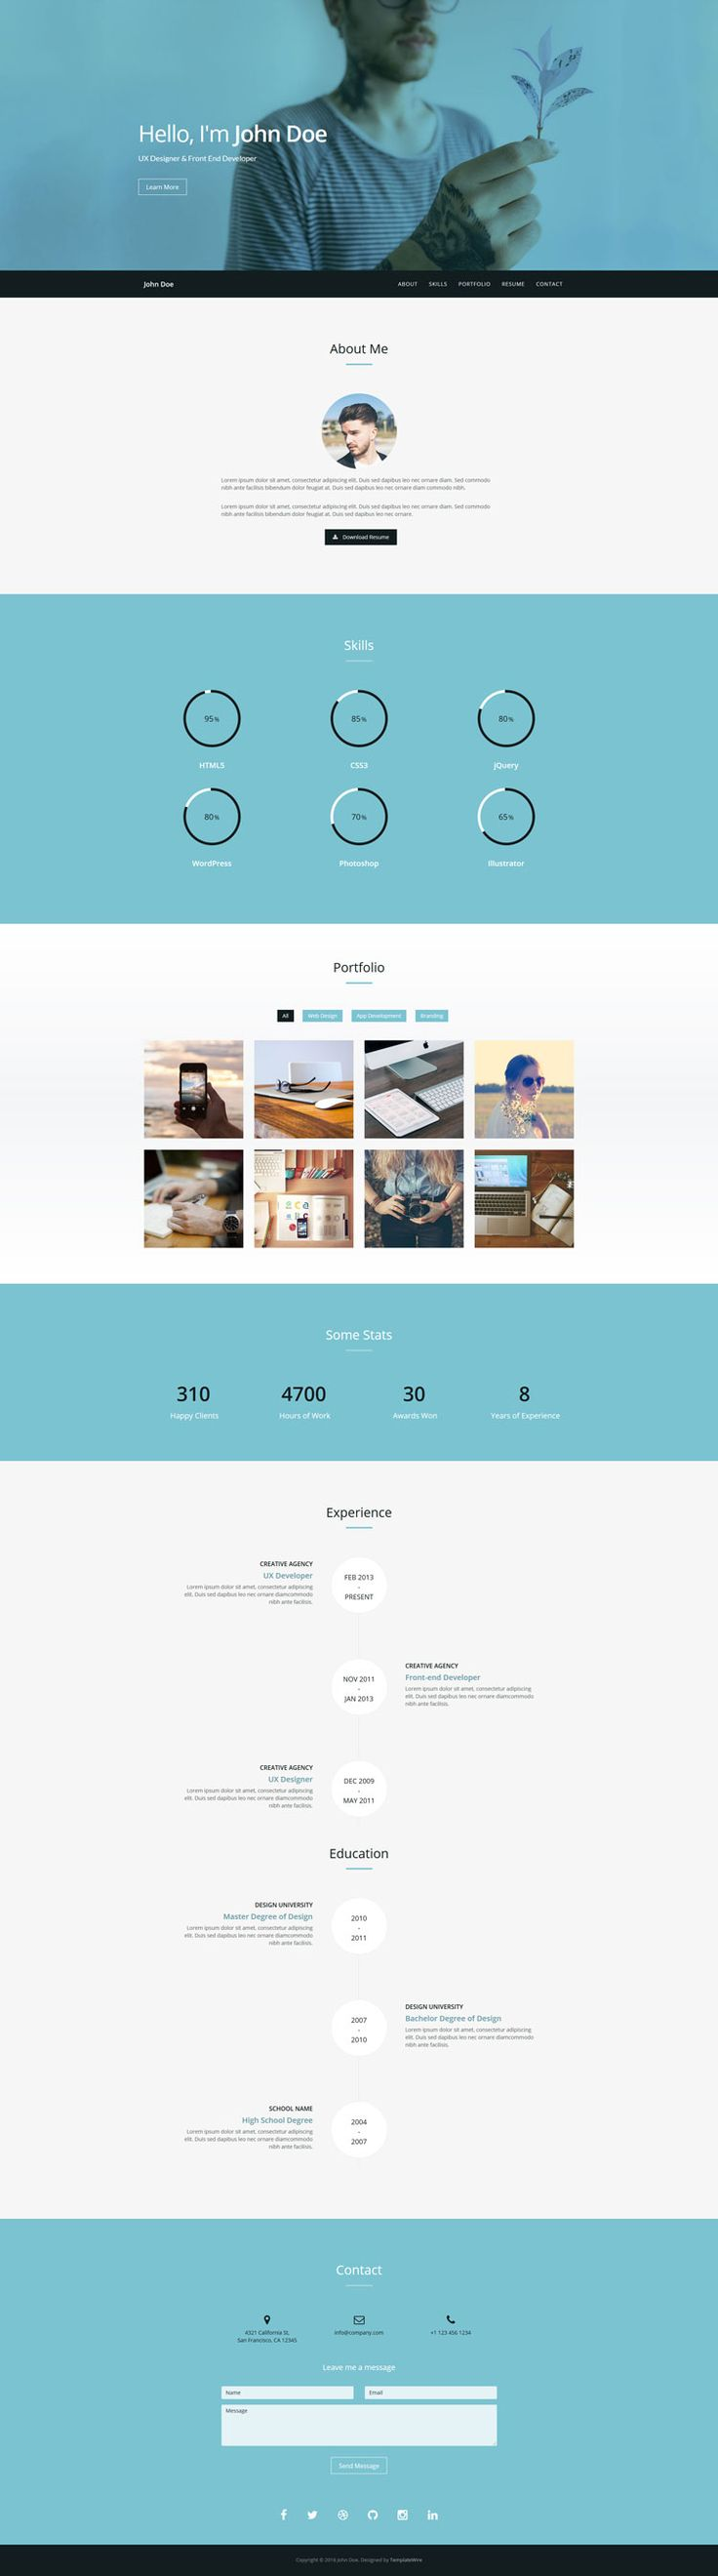 36 best free bootstrap templates images on pinterest responsive html resume cv template built with bootstrap features include responsive design filterable portfolio resume section working contact form and more falaconquin